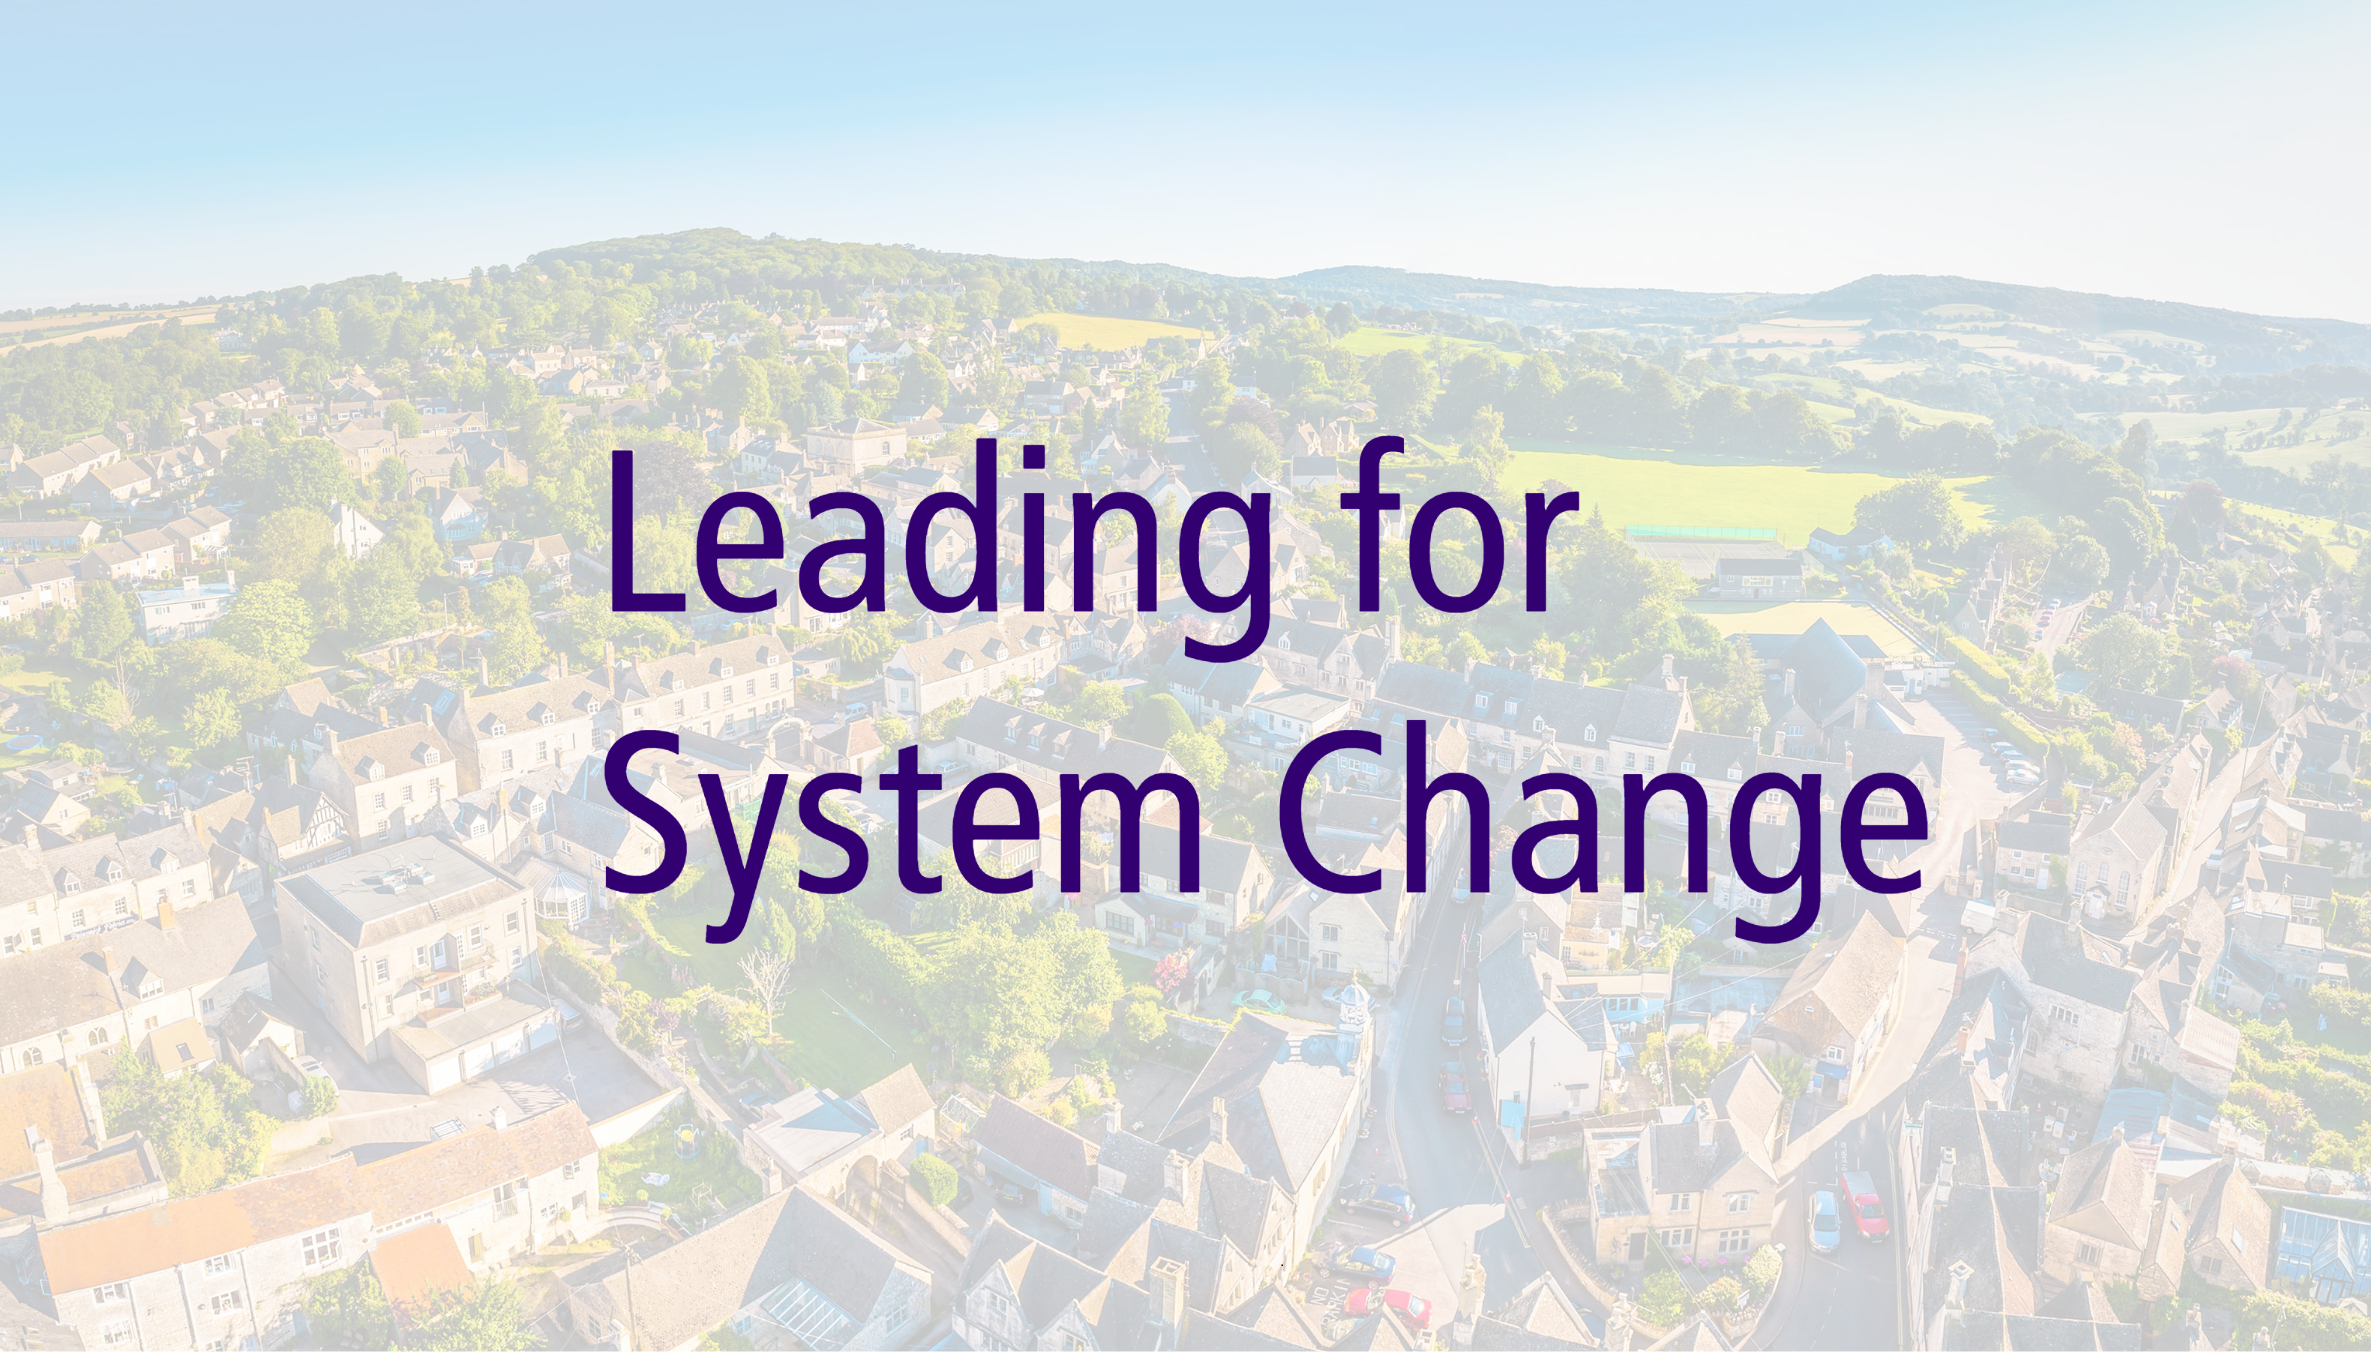 Leading for system change